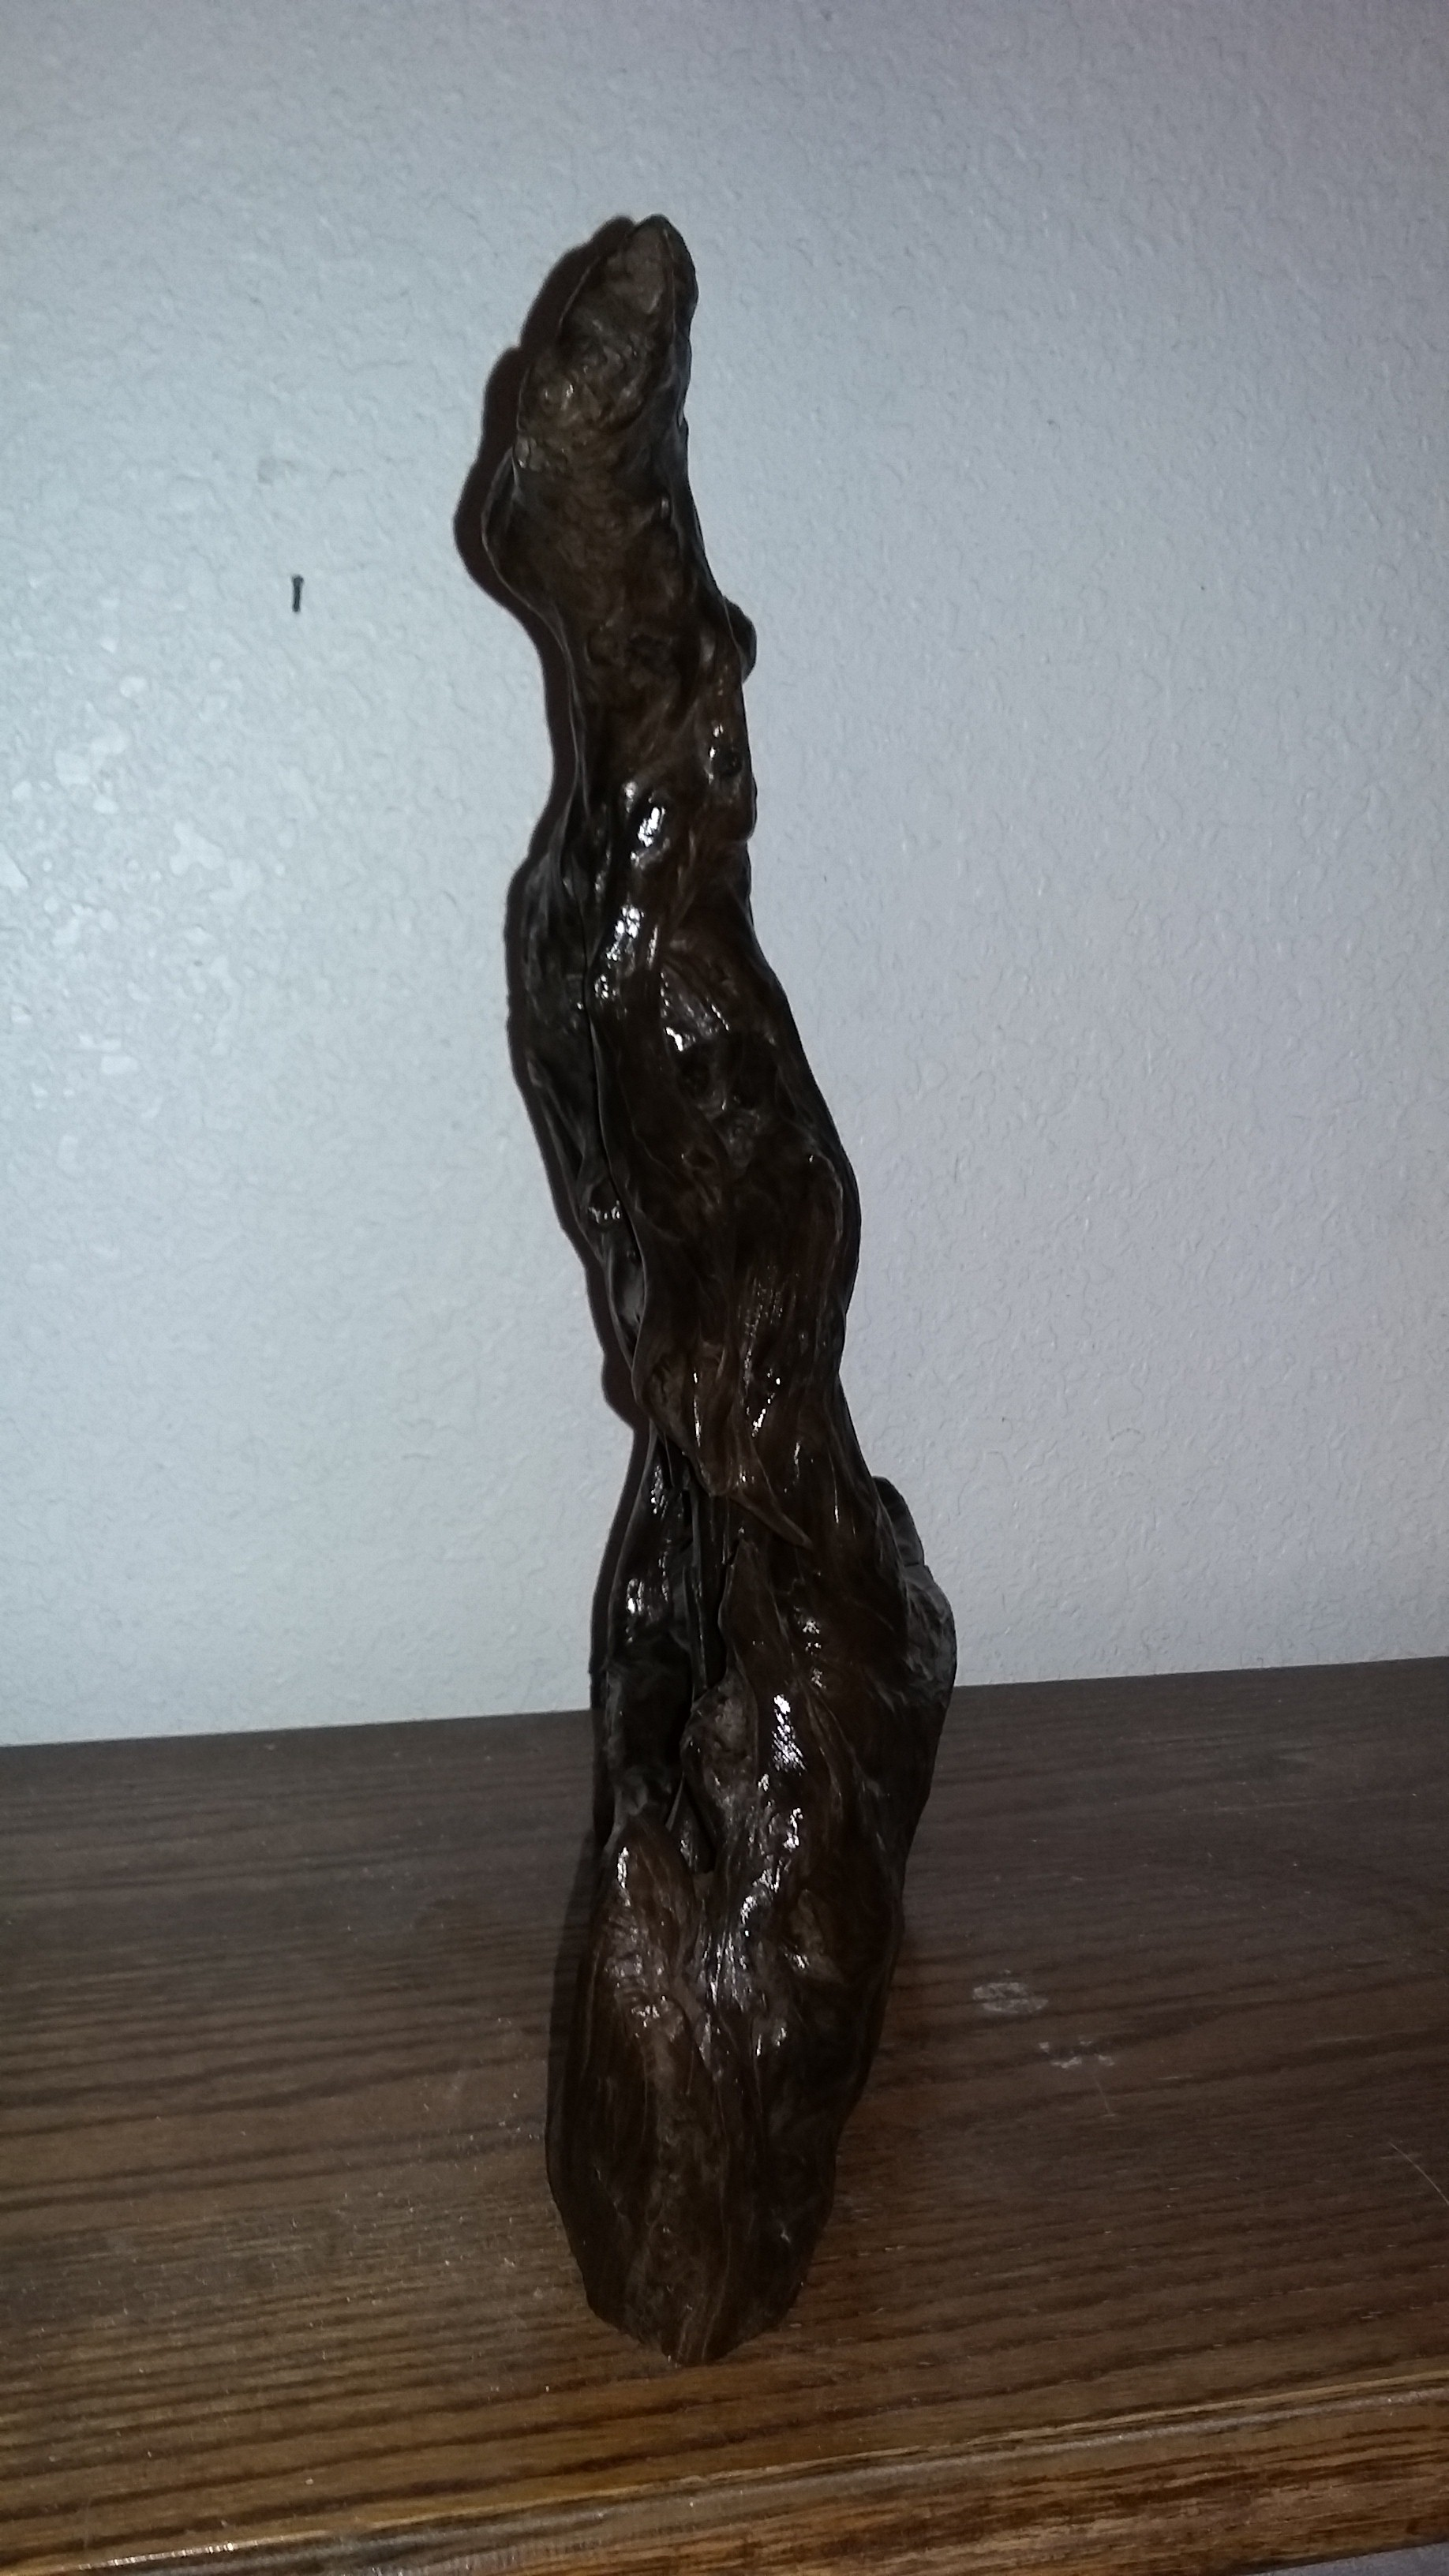 drift wood statue 003 - Copy